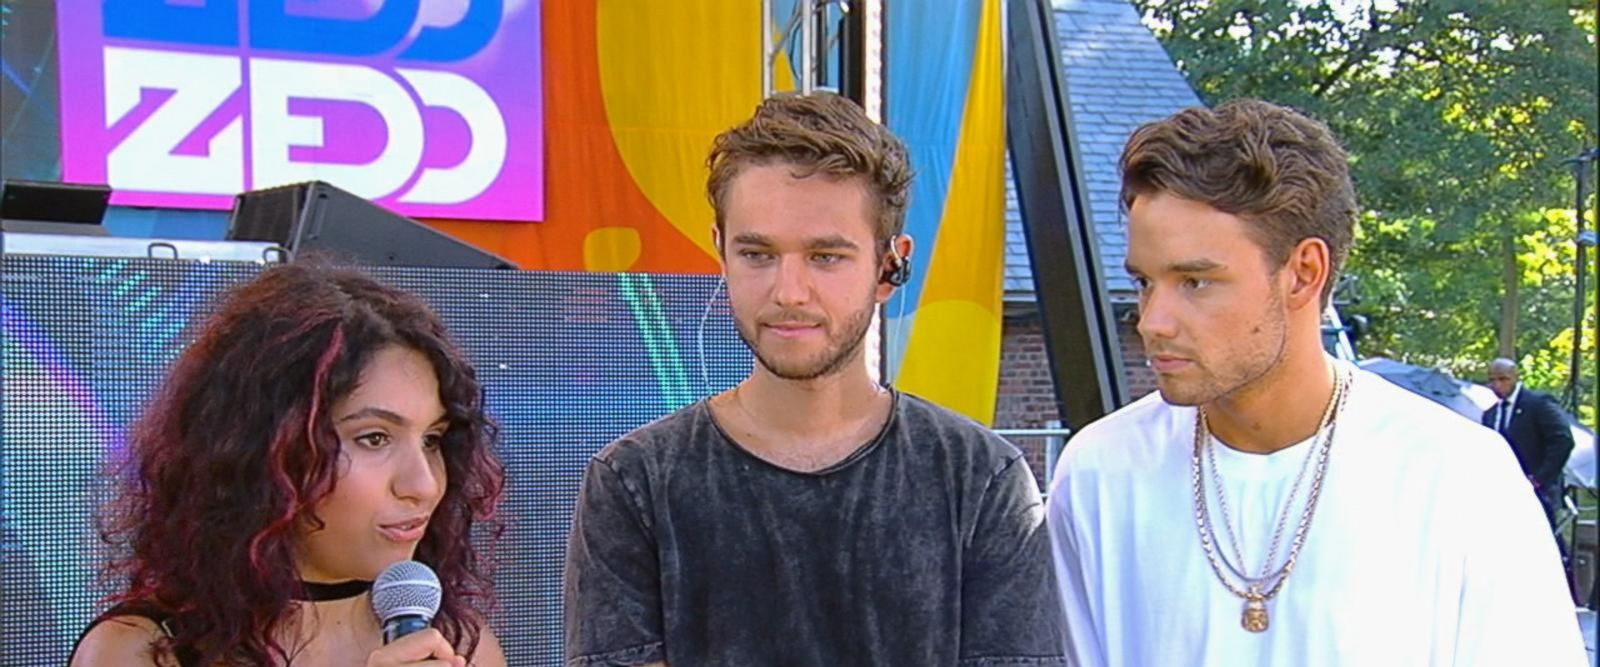 VIDEO: Zedd, Liam Payne and Alessia Cara dish on their latest projects